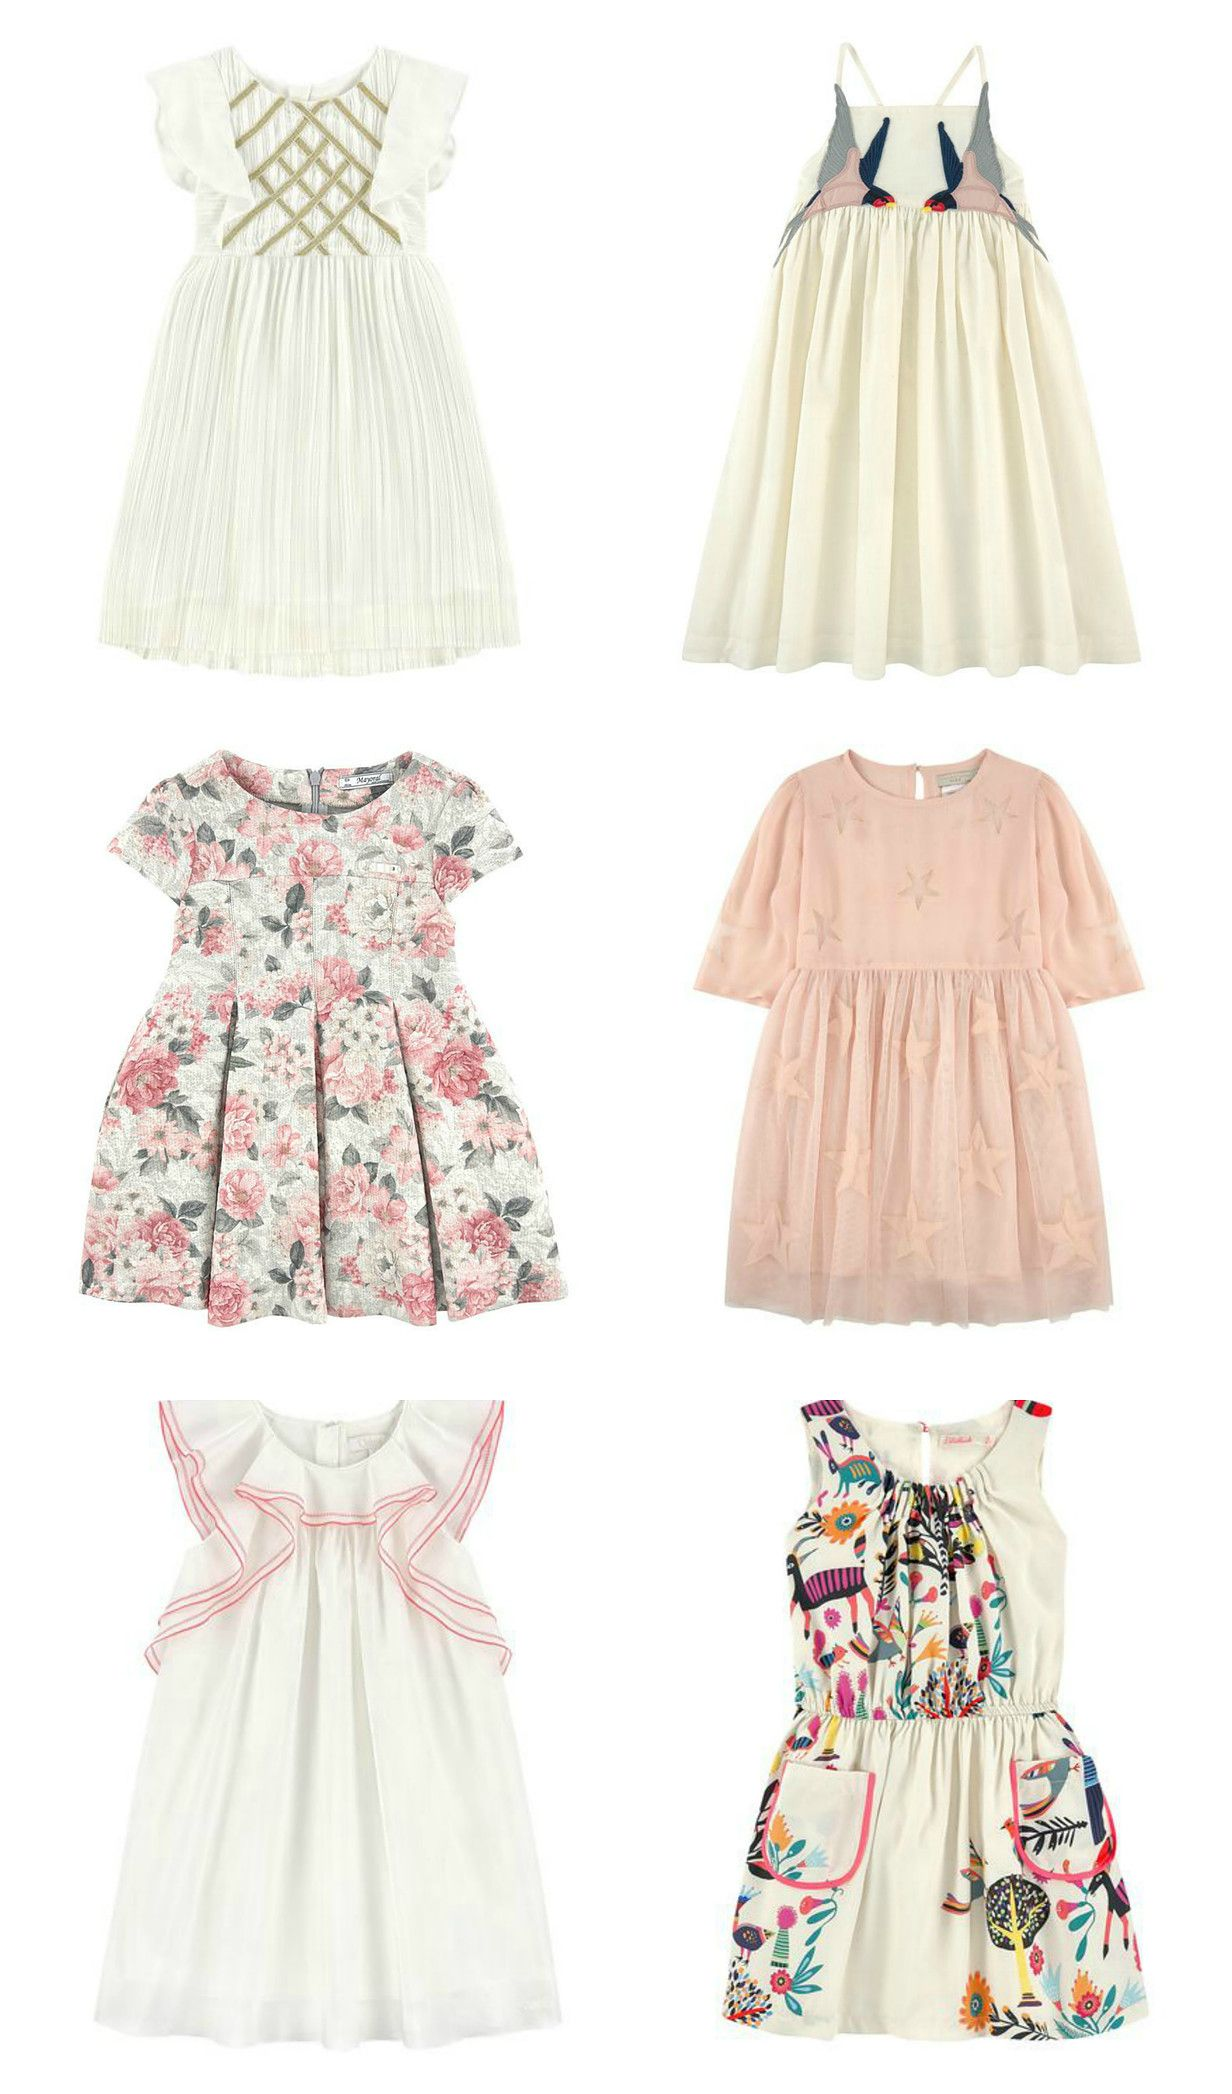 On The Blog A Little Bohemian Girl Dresses Serenebohemian A Little Bohemian Girl